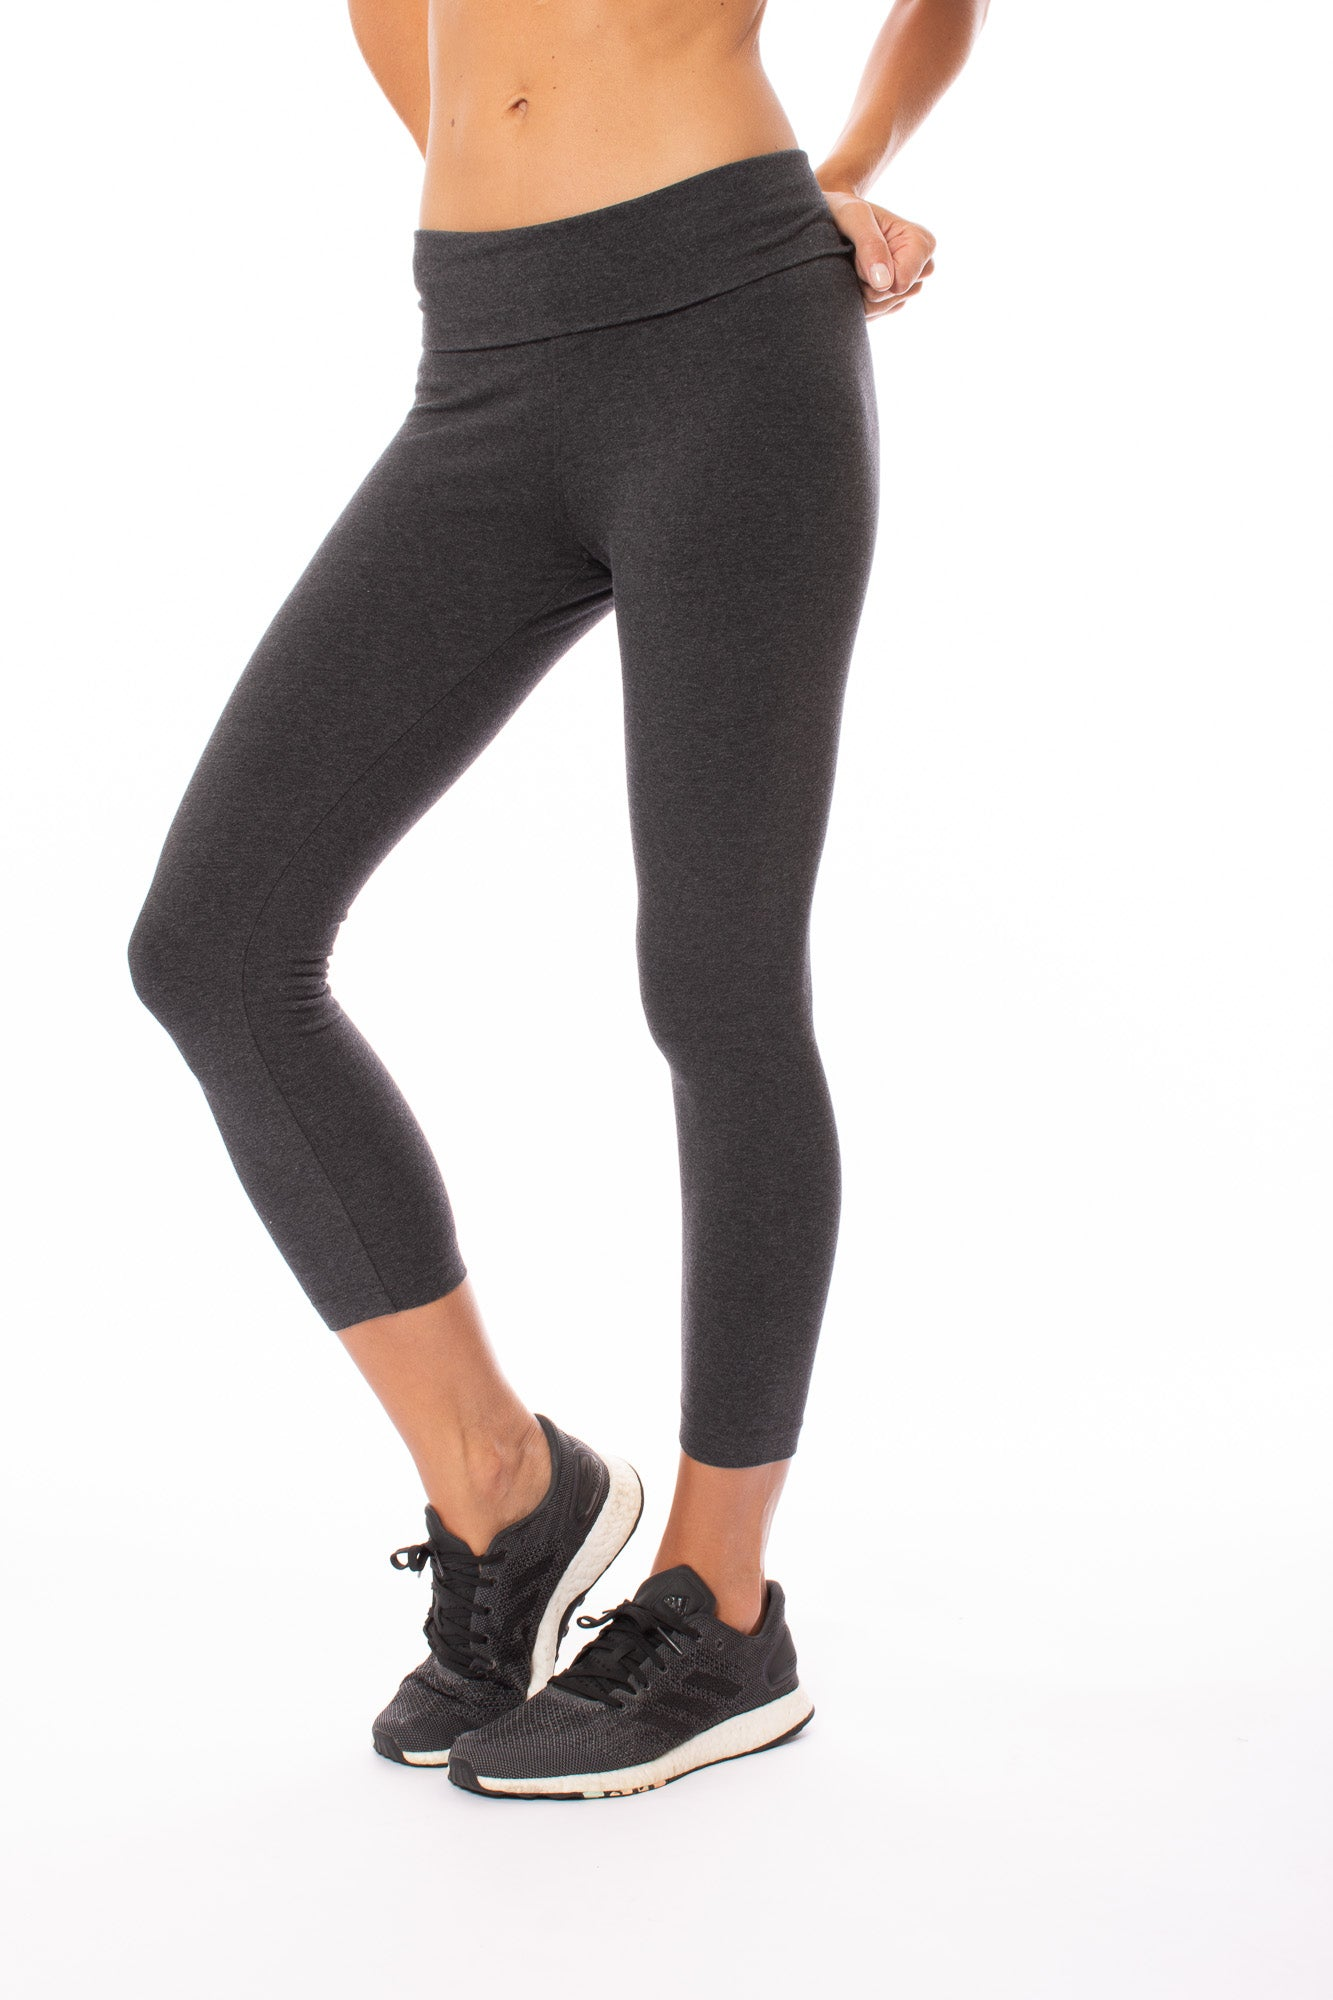 Roll Down Layered Legging (Style 588, Dark Charcoal) by Hard Tail Forever